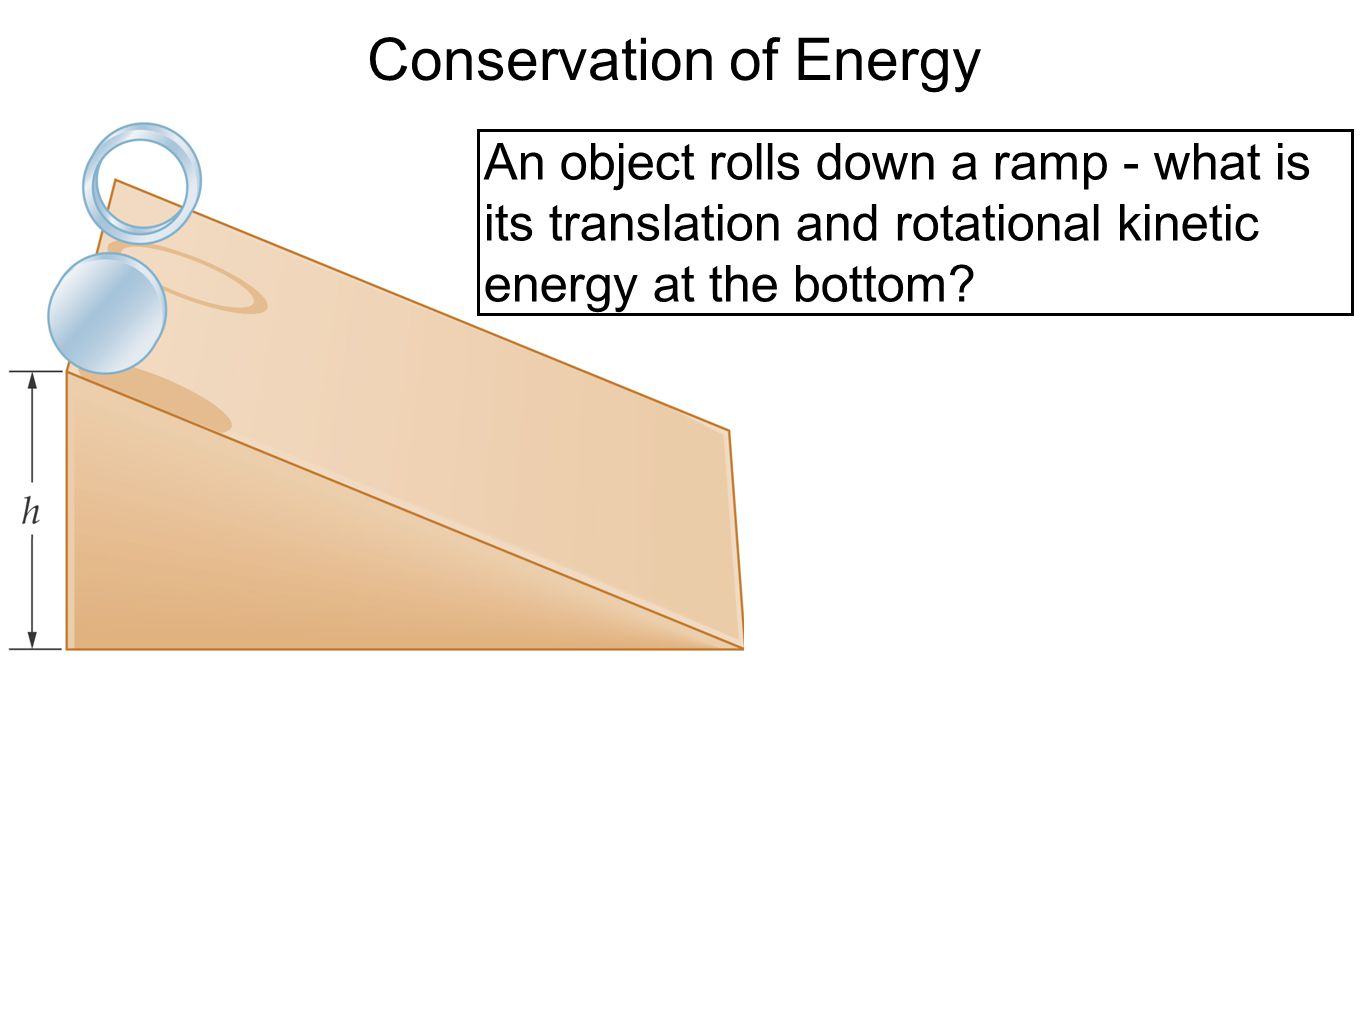 Conservation of Energy An object rolls down a ramp - what is its translation and rotational kinetic energy at the bottom?